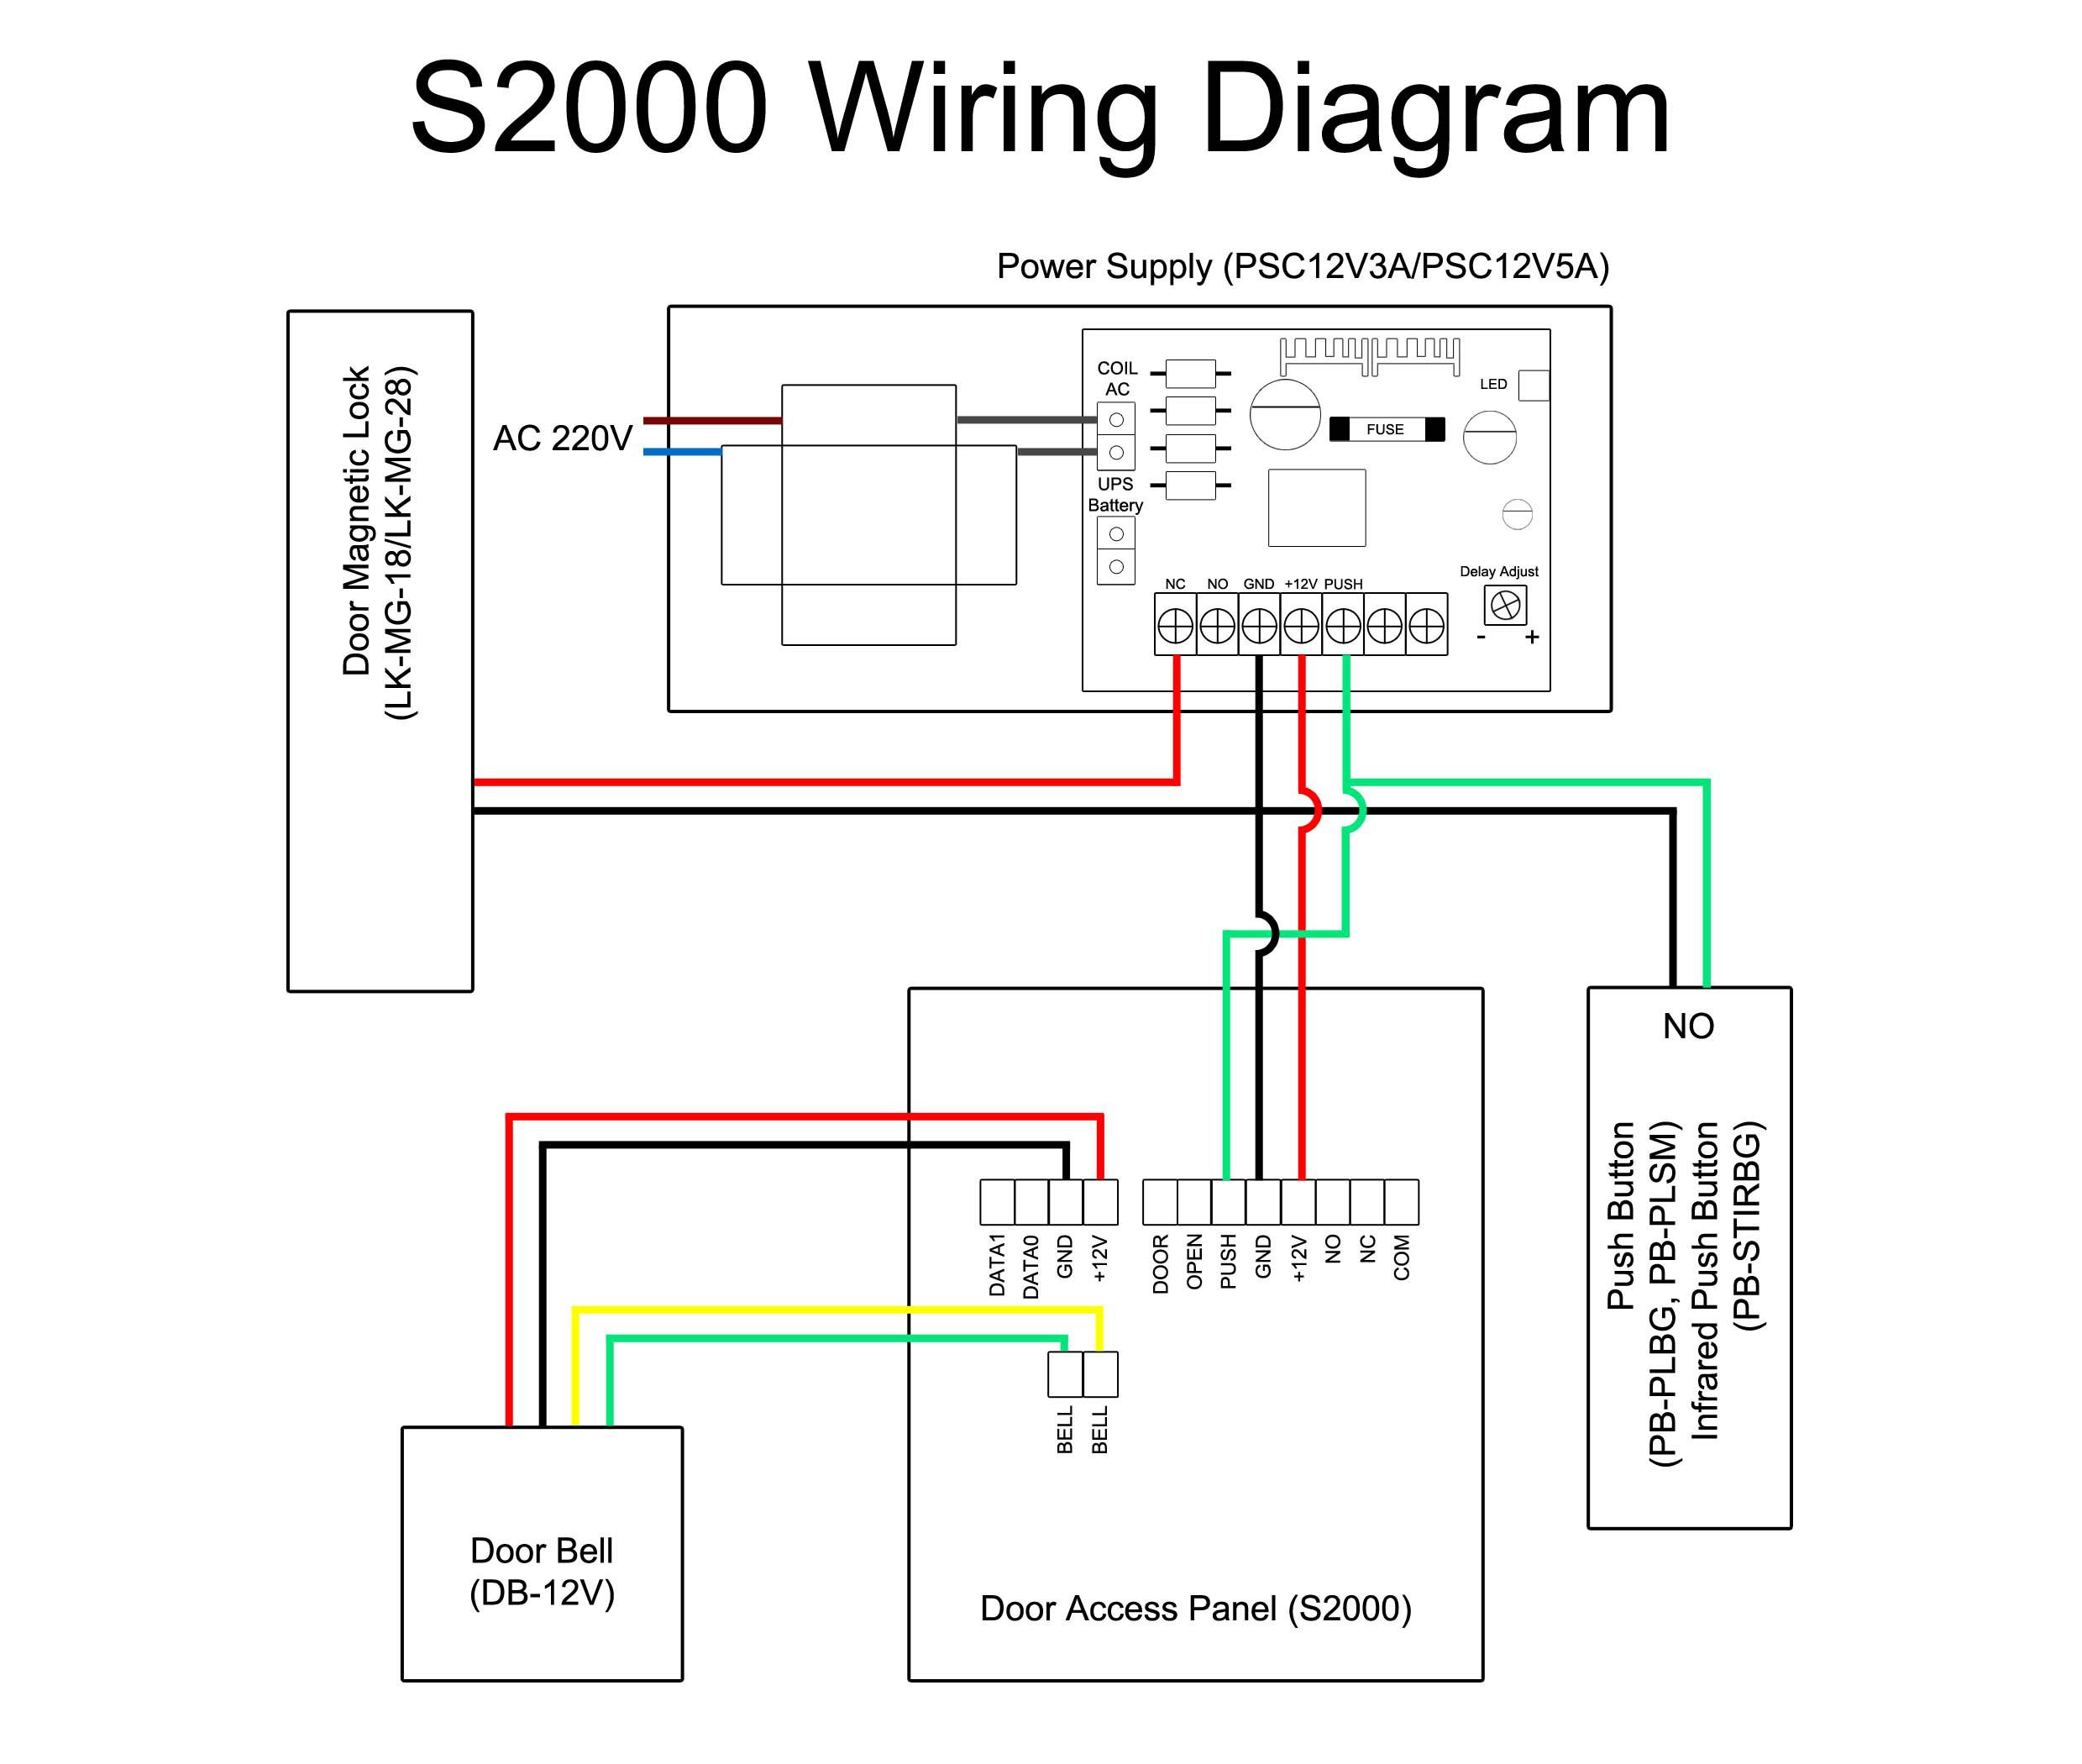 Crossover Cable Diagram Wiring Harness Wiring Diagram Wiring